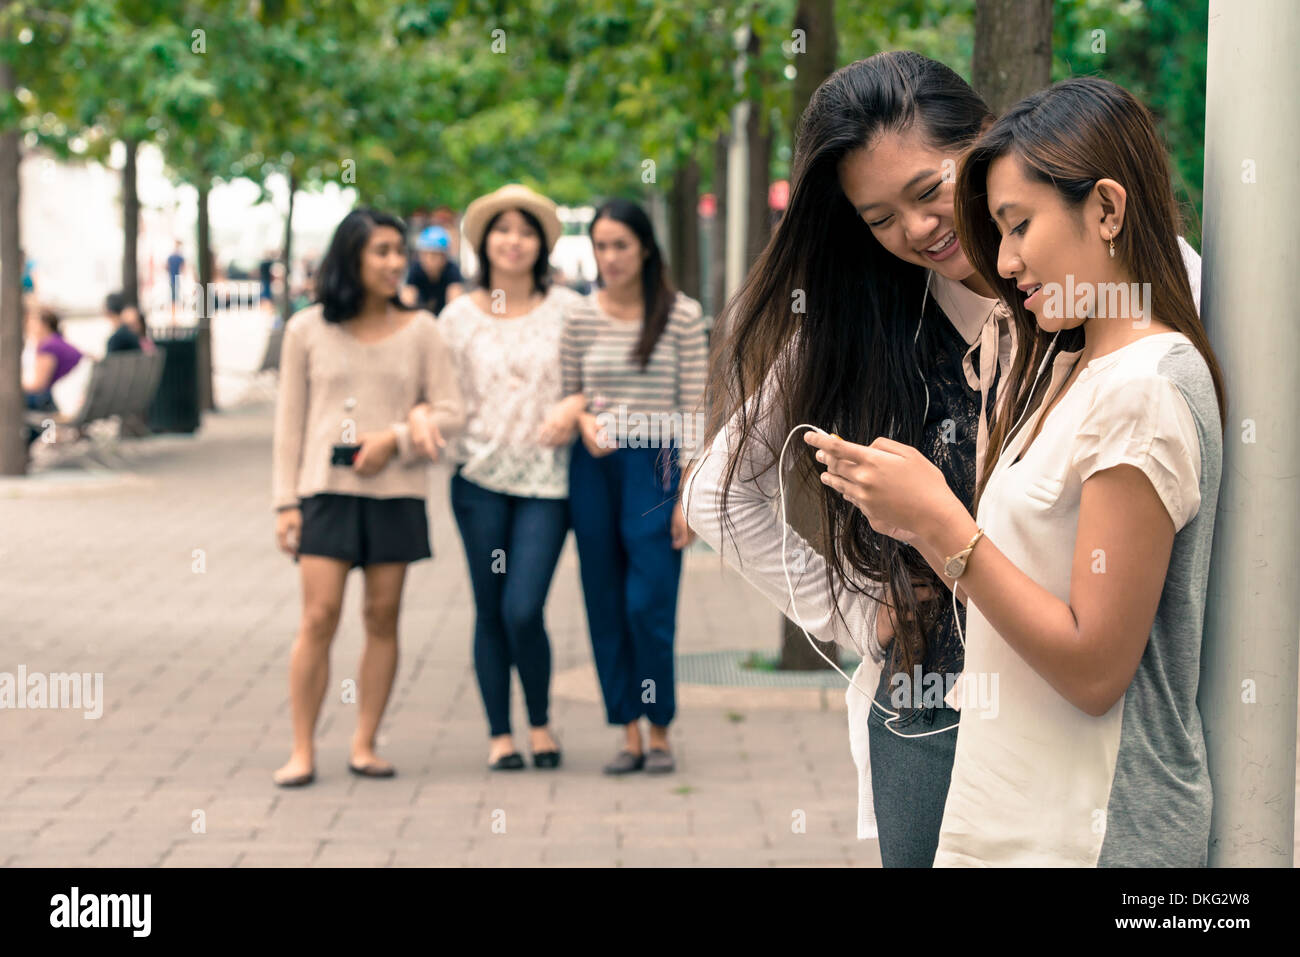 Women looking at technology, friends approaching - Stock Image